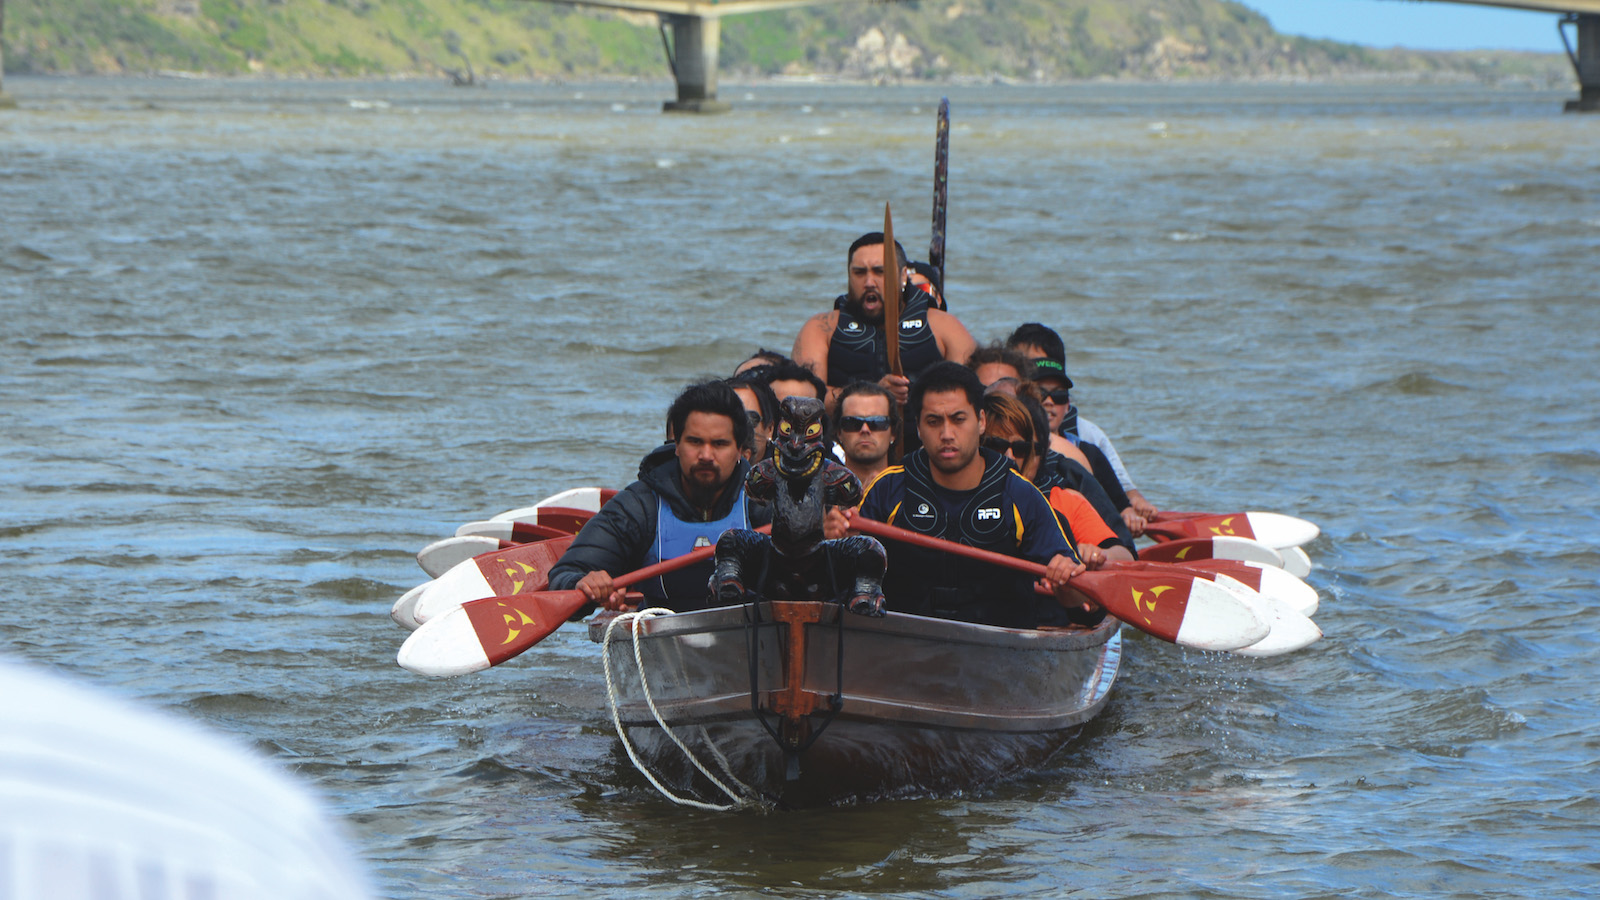 A group of Maori participating in an indigenous ceremony on the Whanganui River in New Zealand. Photo: Dennis Kuhn